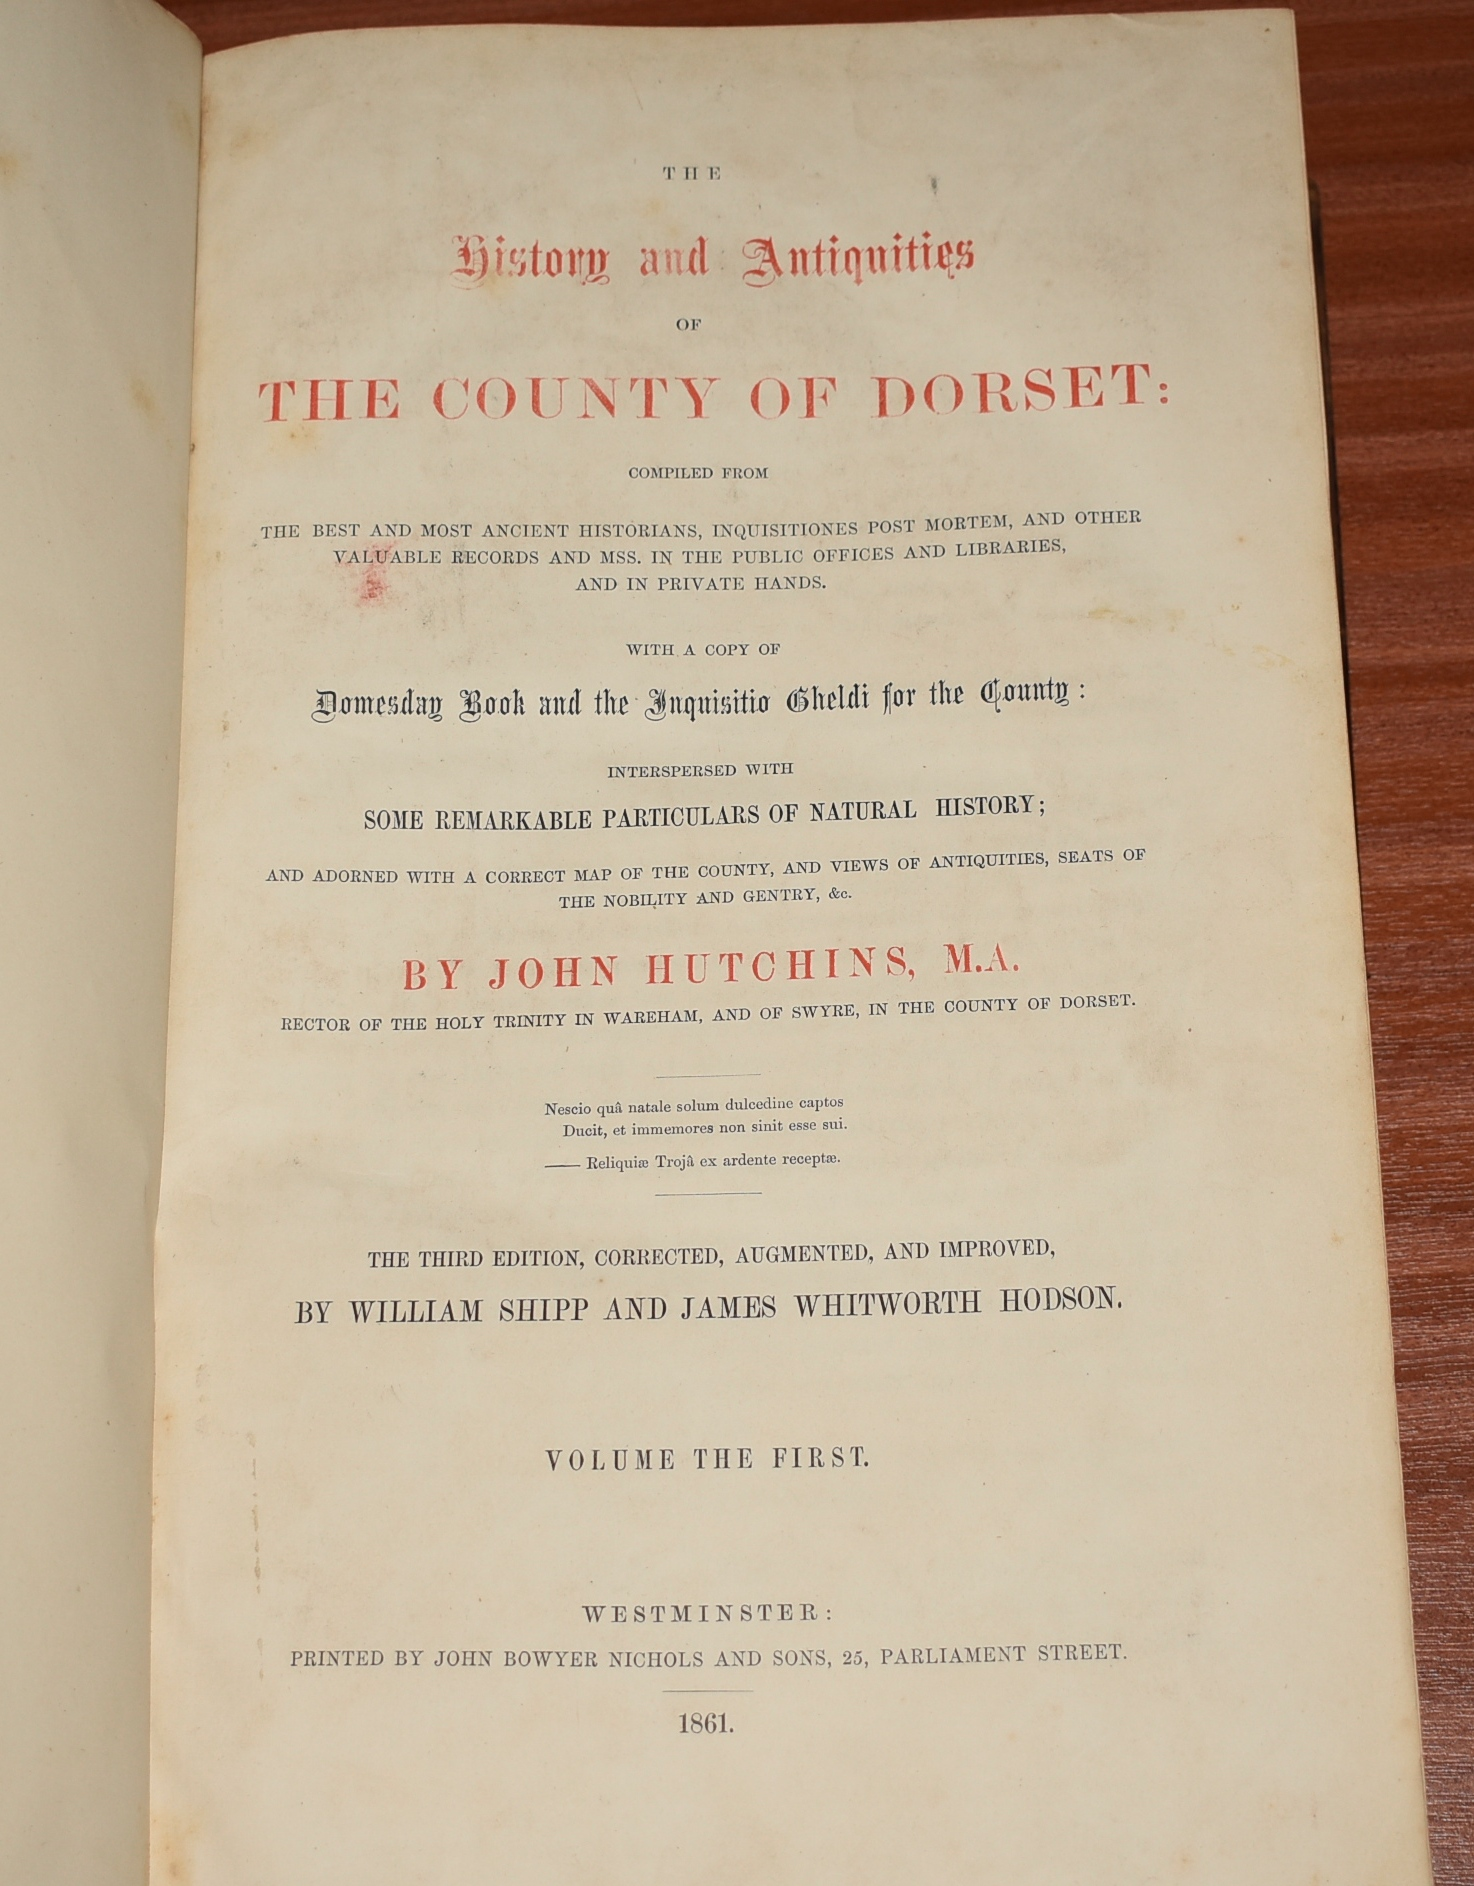 "Image for History and Antiquities of the County of Dorset: Compiled from the best and most ancient historians, inquisitiones post mortem, and other valuable records and MSS. in the public offices and libraries, and in private hands. With a copy of Domesday Book, and the ""Inquisitio Gheldi"" for the County:Interspersed with some remarkable Particulars of Natural History. And adorned with a Correct map of the County and Views of Antiquities, Seats of the Nobility and Gentry, etc; The Third edition, corrected, augmented & improved by WILLIAM SHIPP & JAMES WHITWORTH HODSON. Four Volumes."